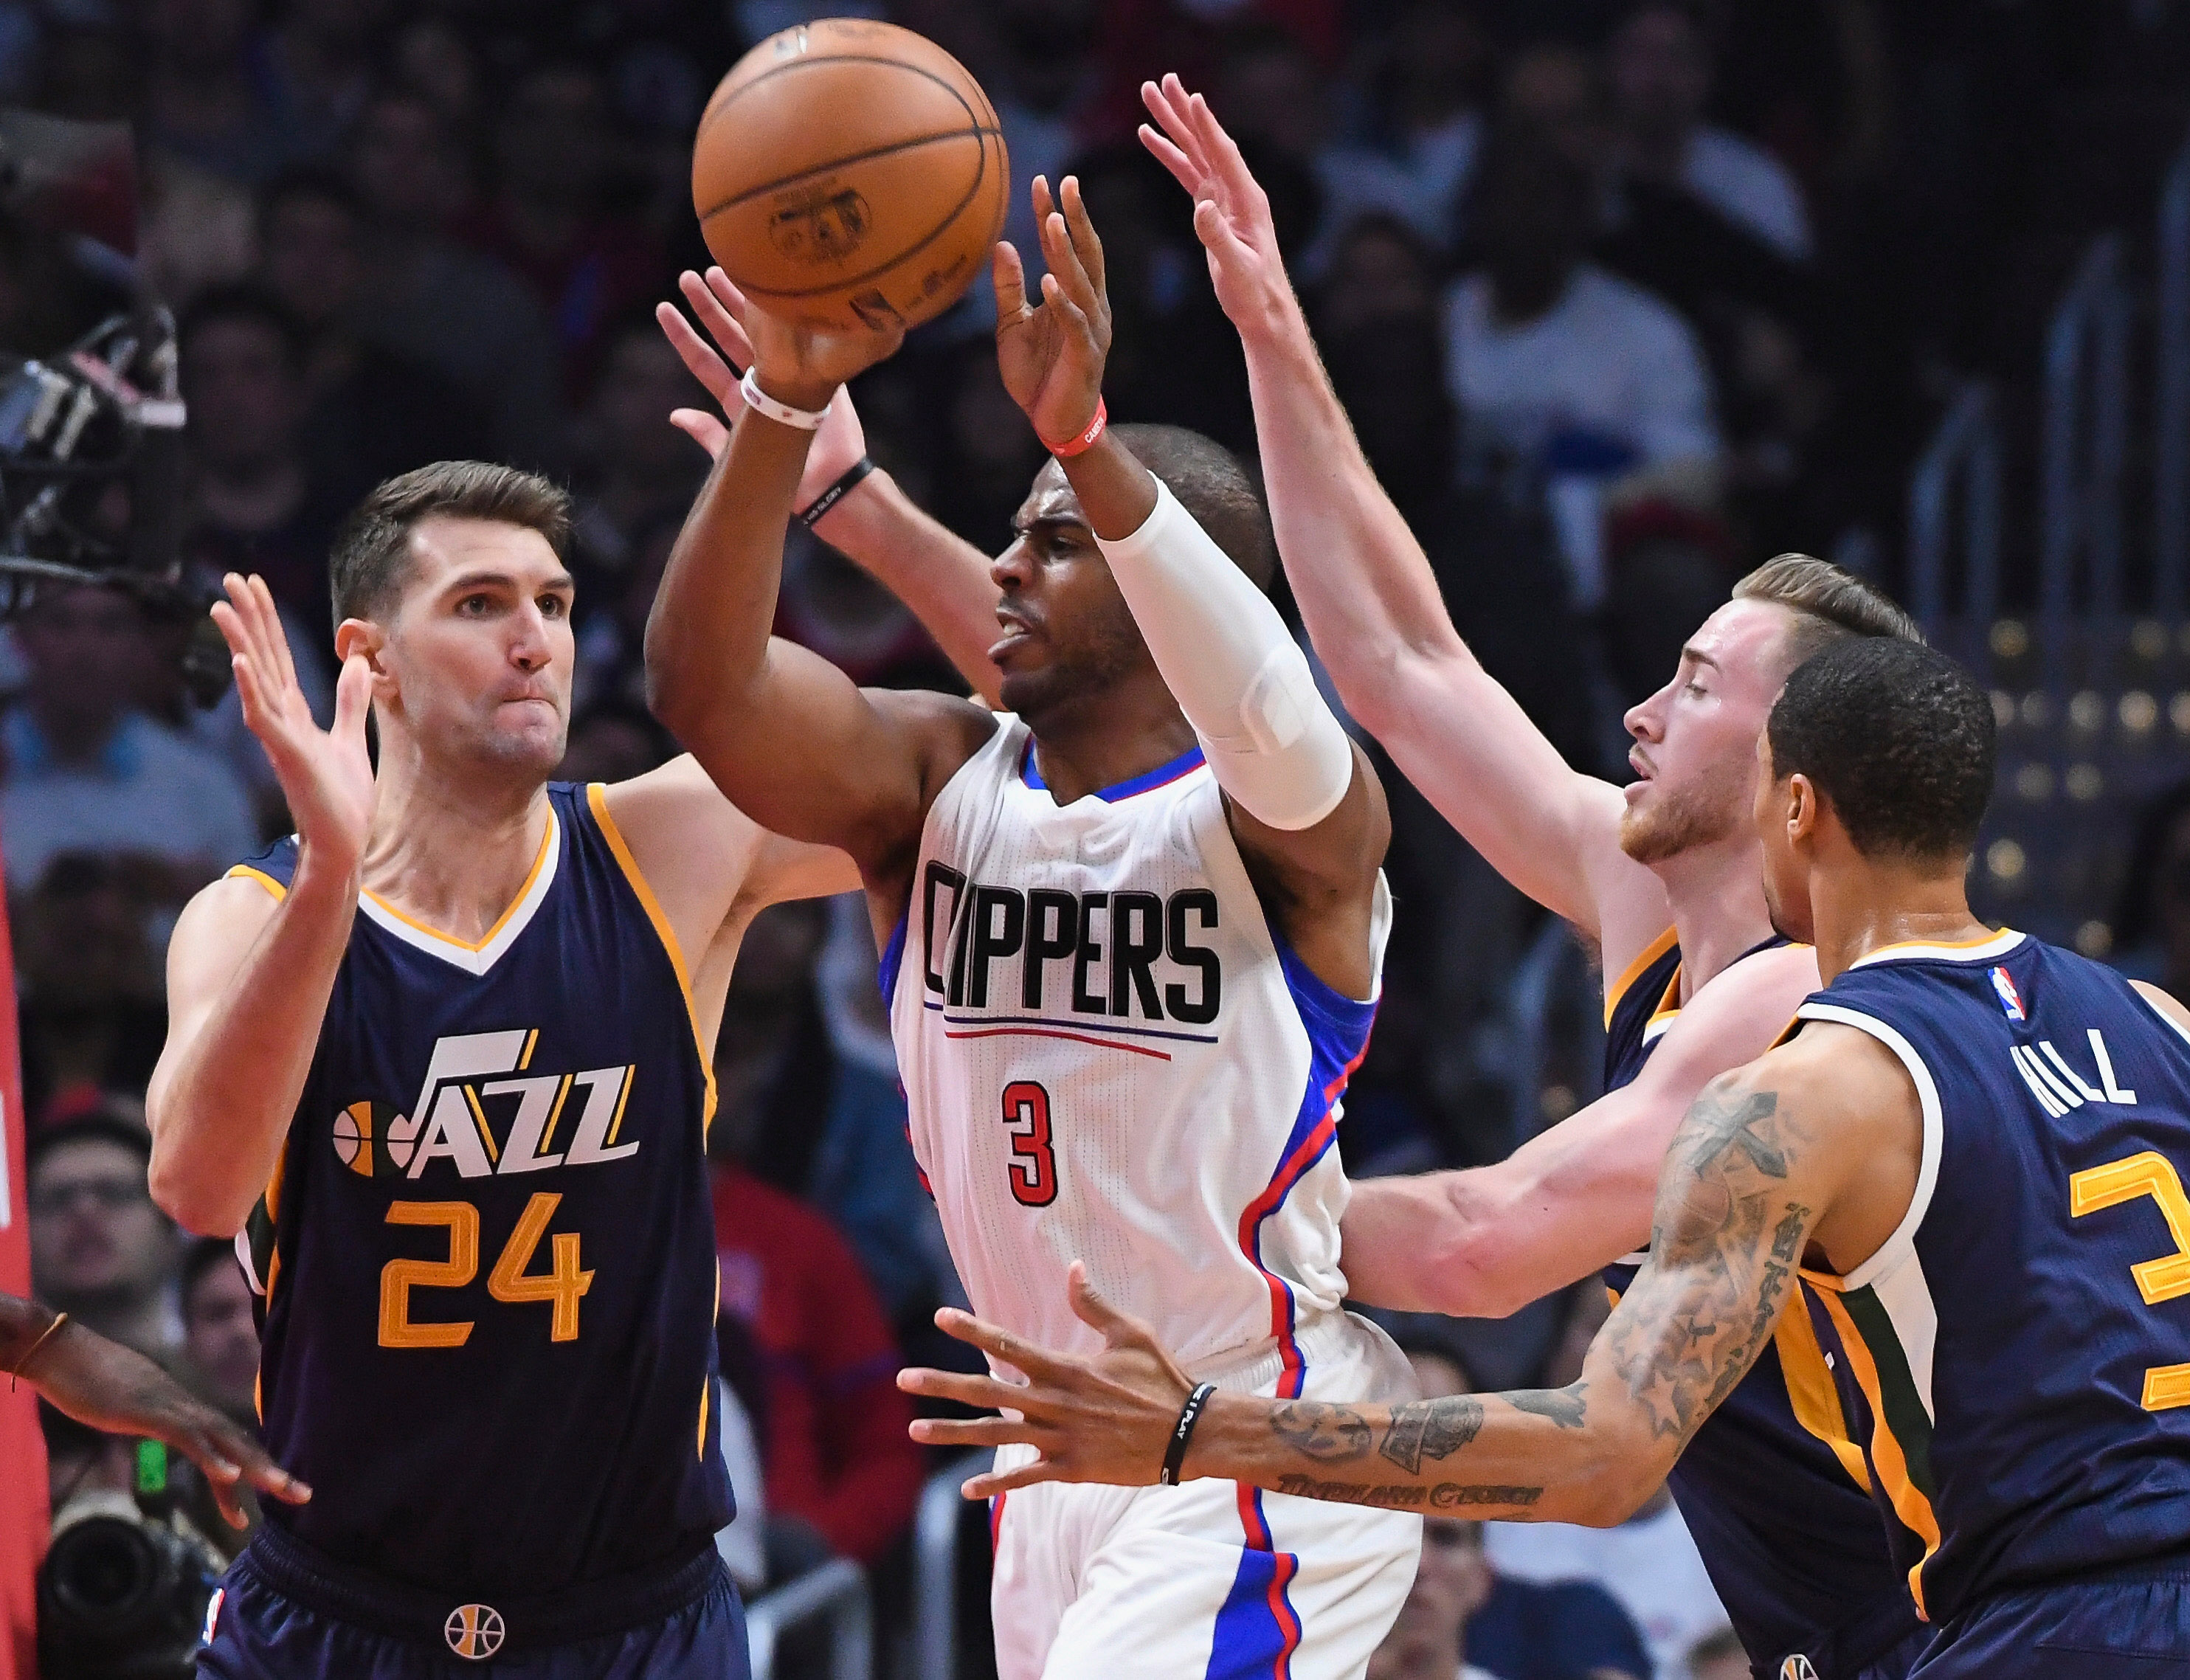 10015328-nba-playoffs-utah-jazz-at-los-angeles-clippers